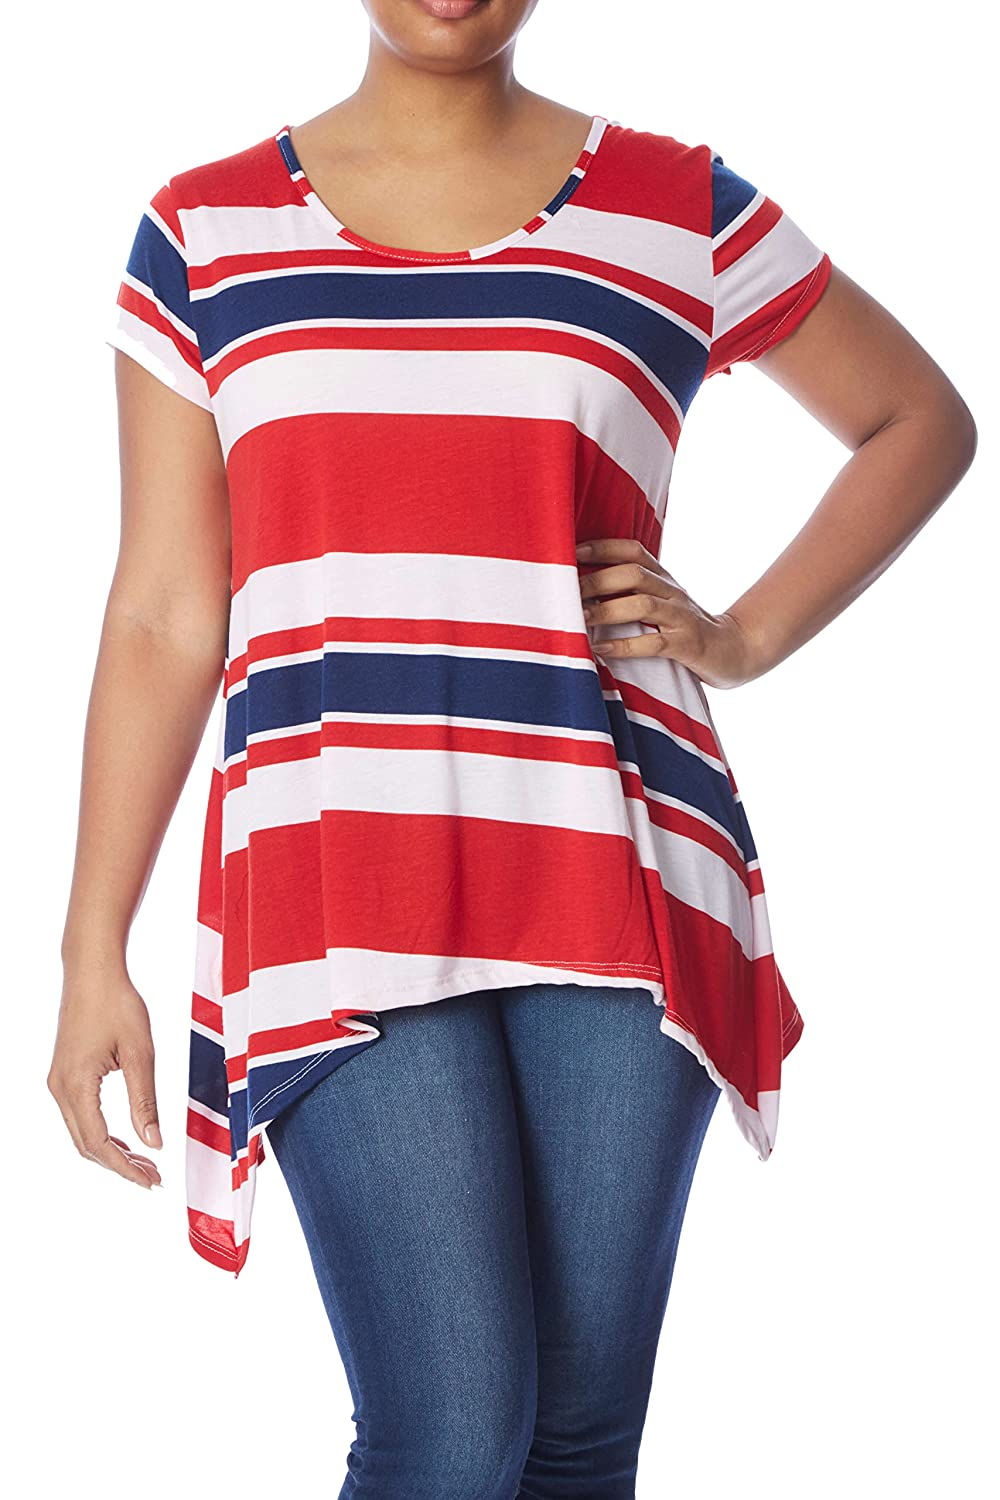 Womens Plus Size Sharkbite Top: Long Stripe Tunic High-Low Hem, Cap Sleeve Shirt